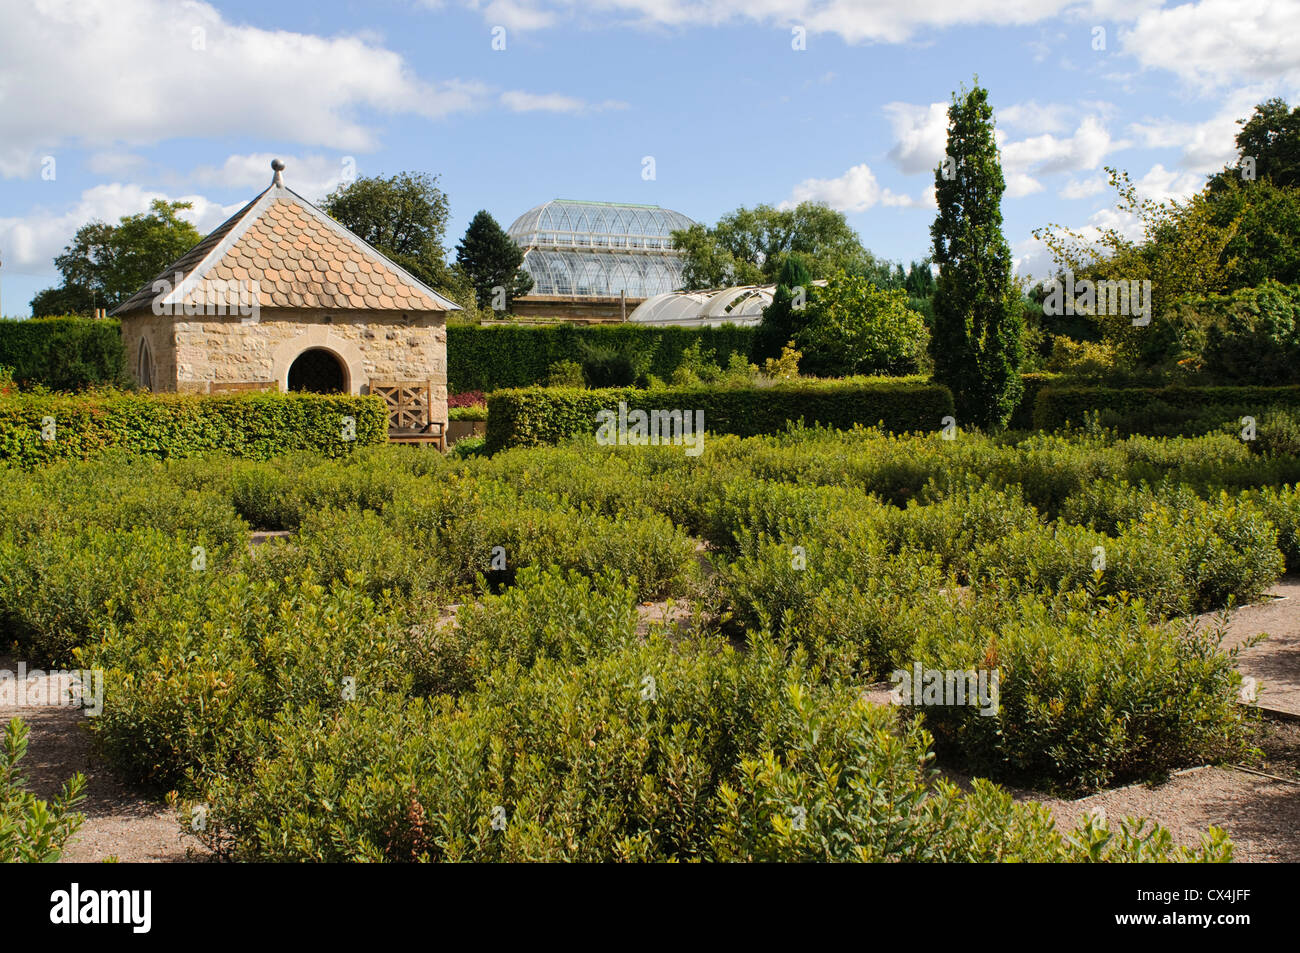 Royal Botanic Garden Edinburgh, The Queen Mother's Memorial Garden. - Stock Image